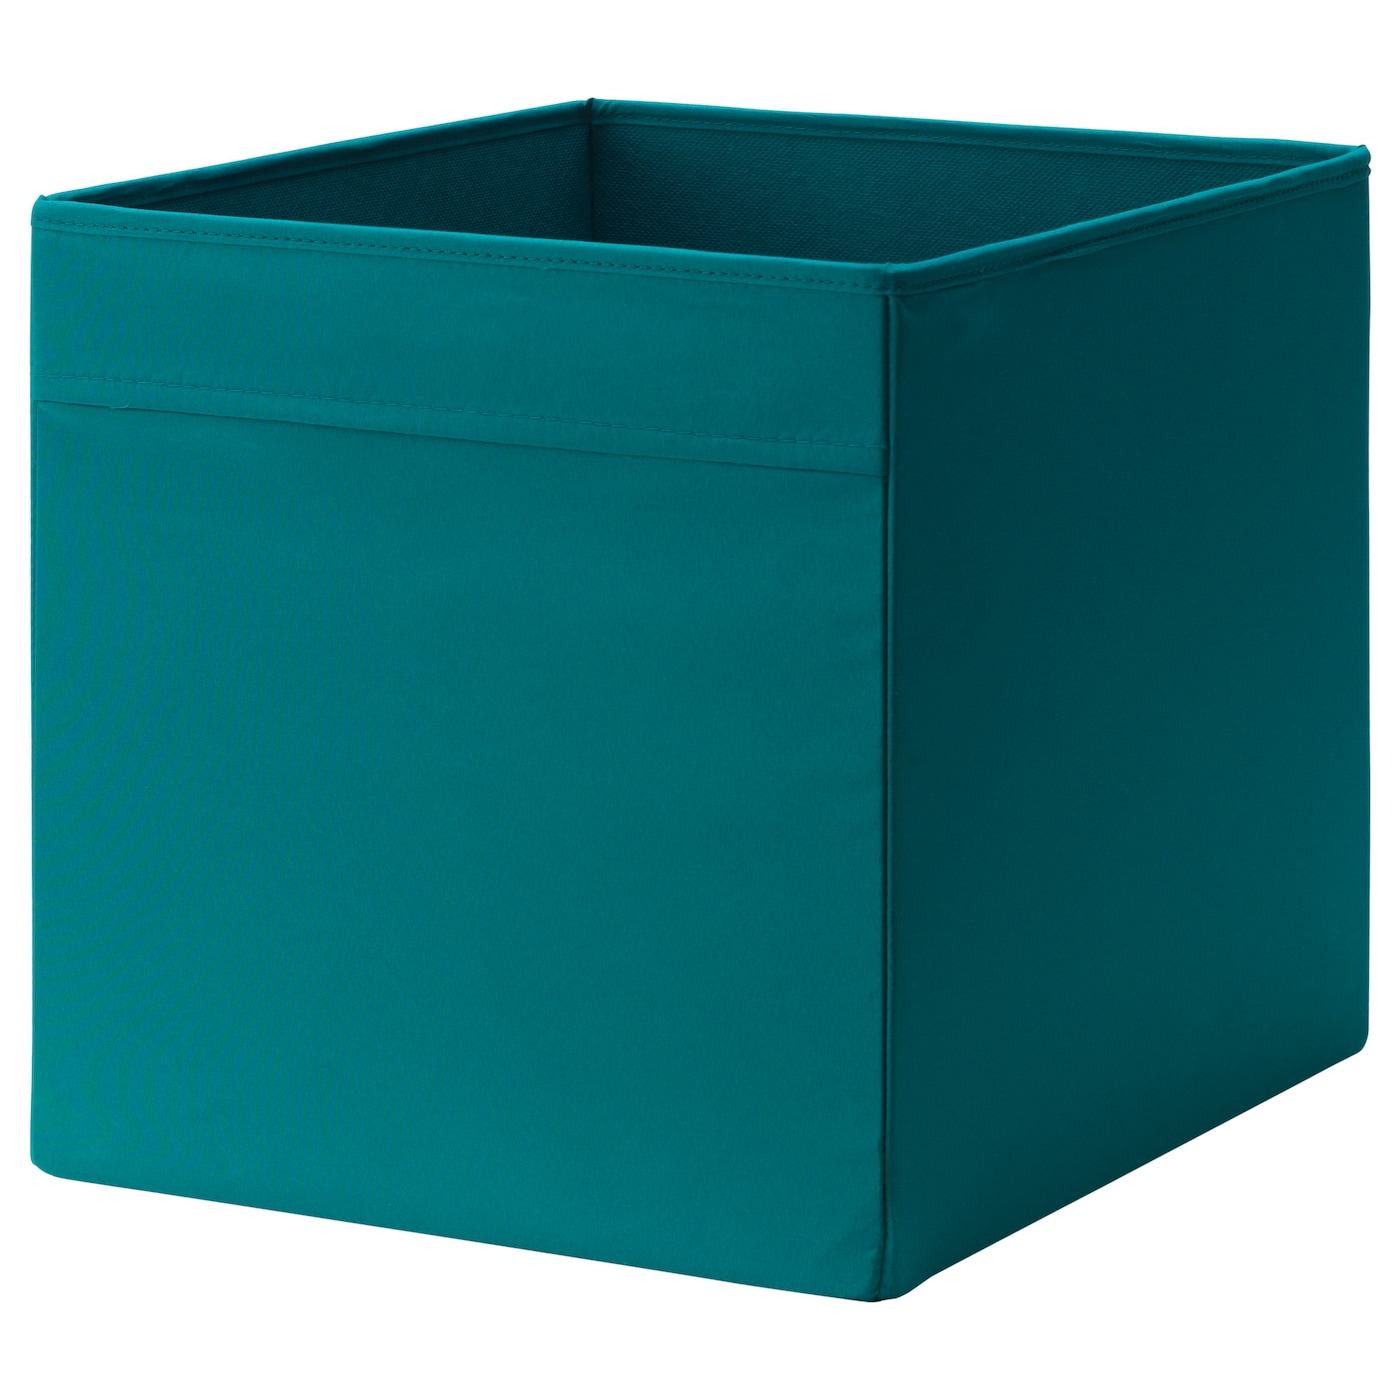 dr na box dark turquoise 33x38x33 cm ikea. Black Bedroom Furniture Sets. Home Design Ideas